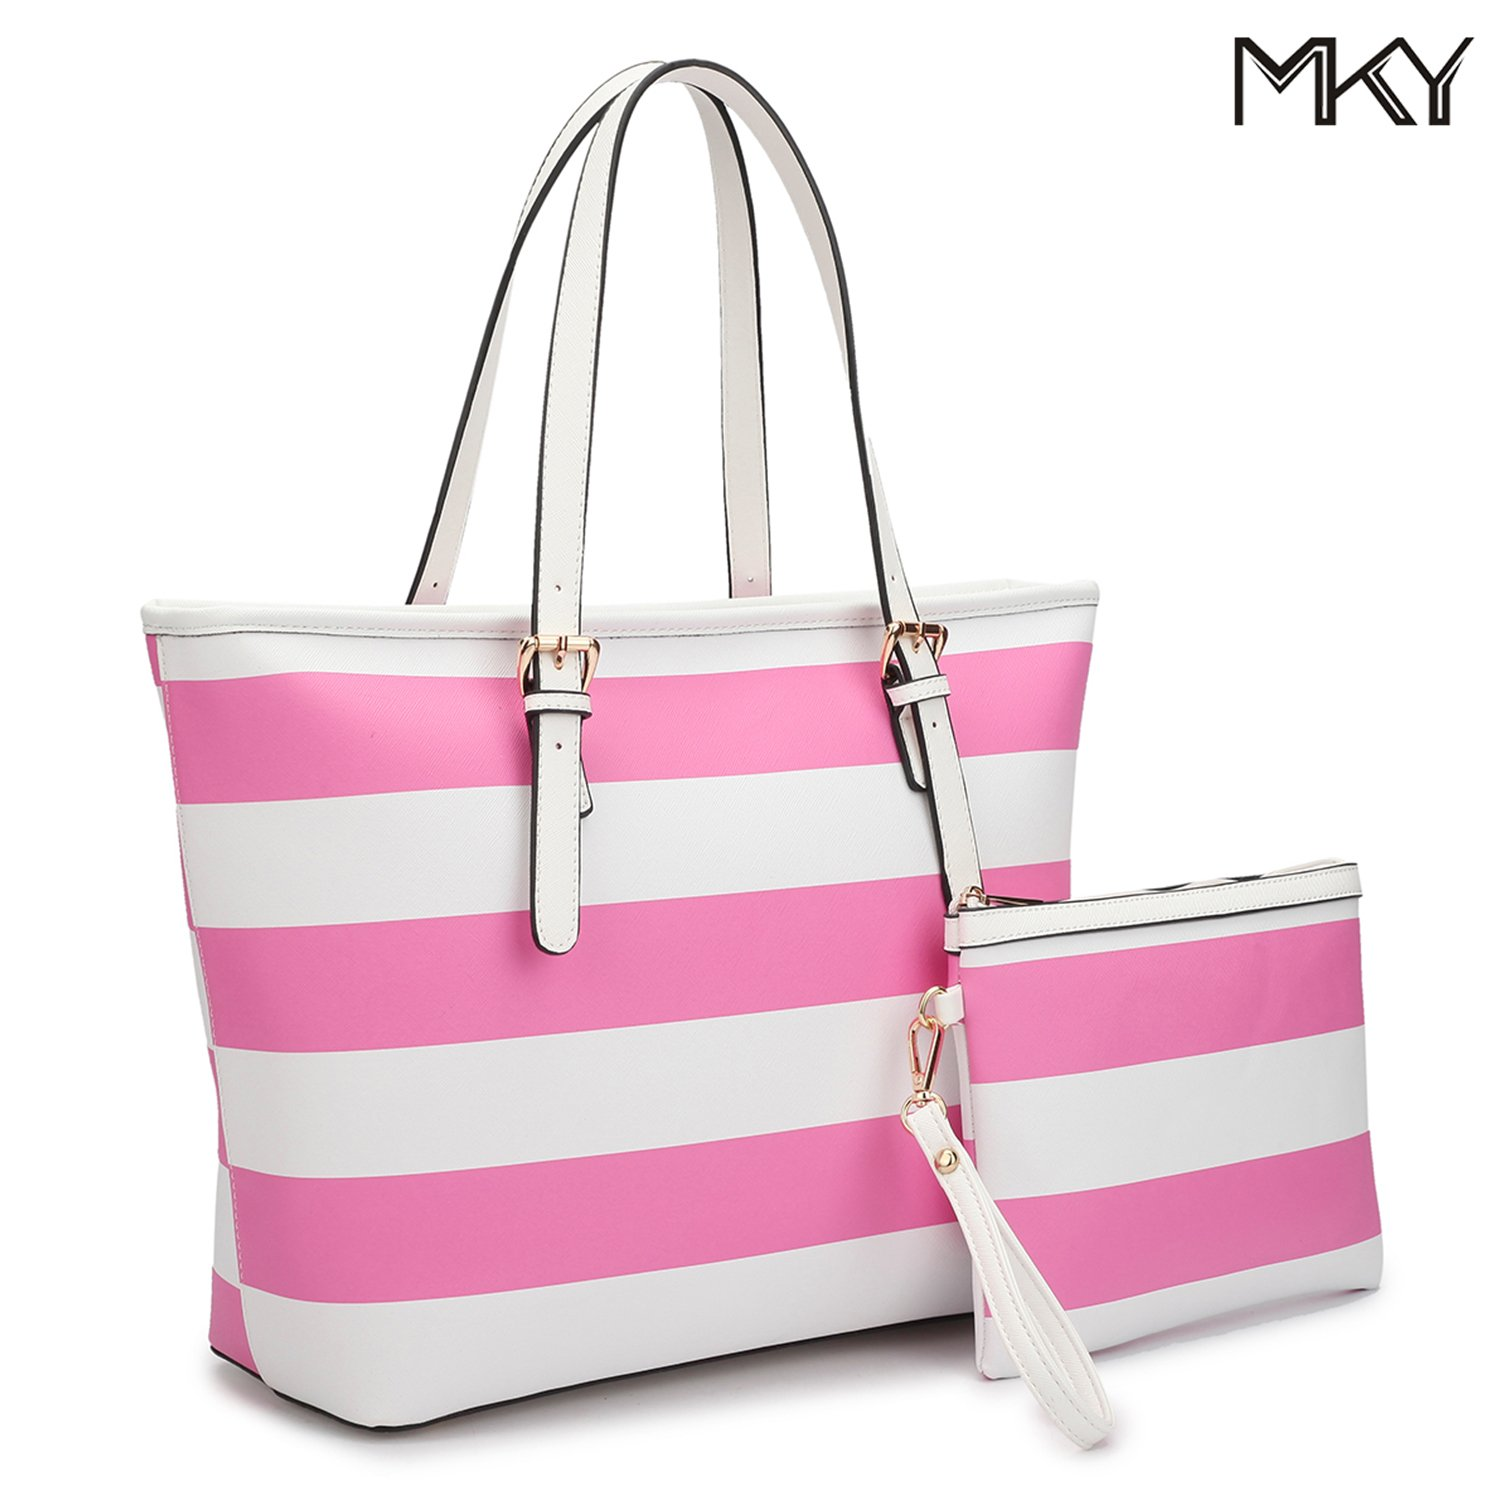 Large Travel Tote Leather Zipper Shoulder Handbag Top Handle Two Tone Purse Wallet Set Pink/White